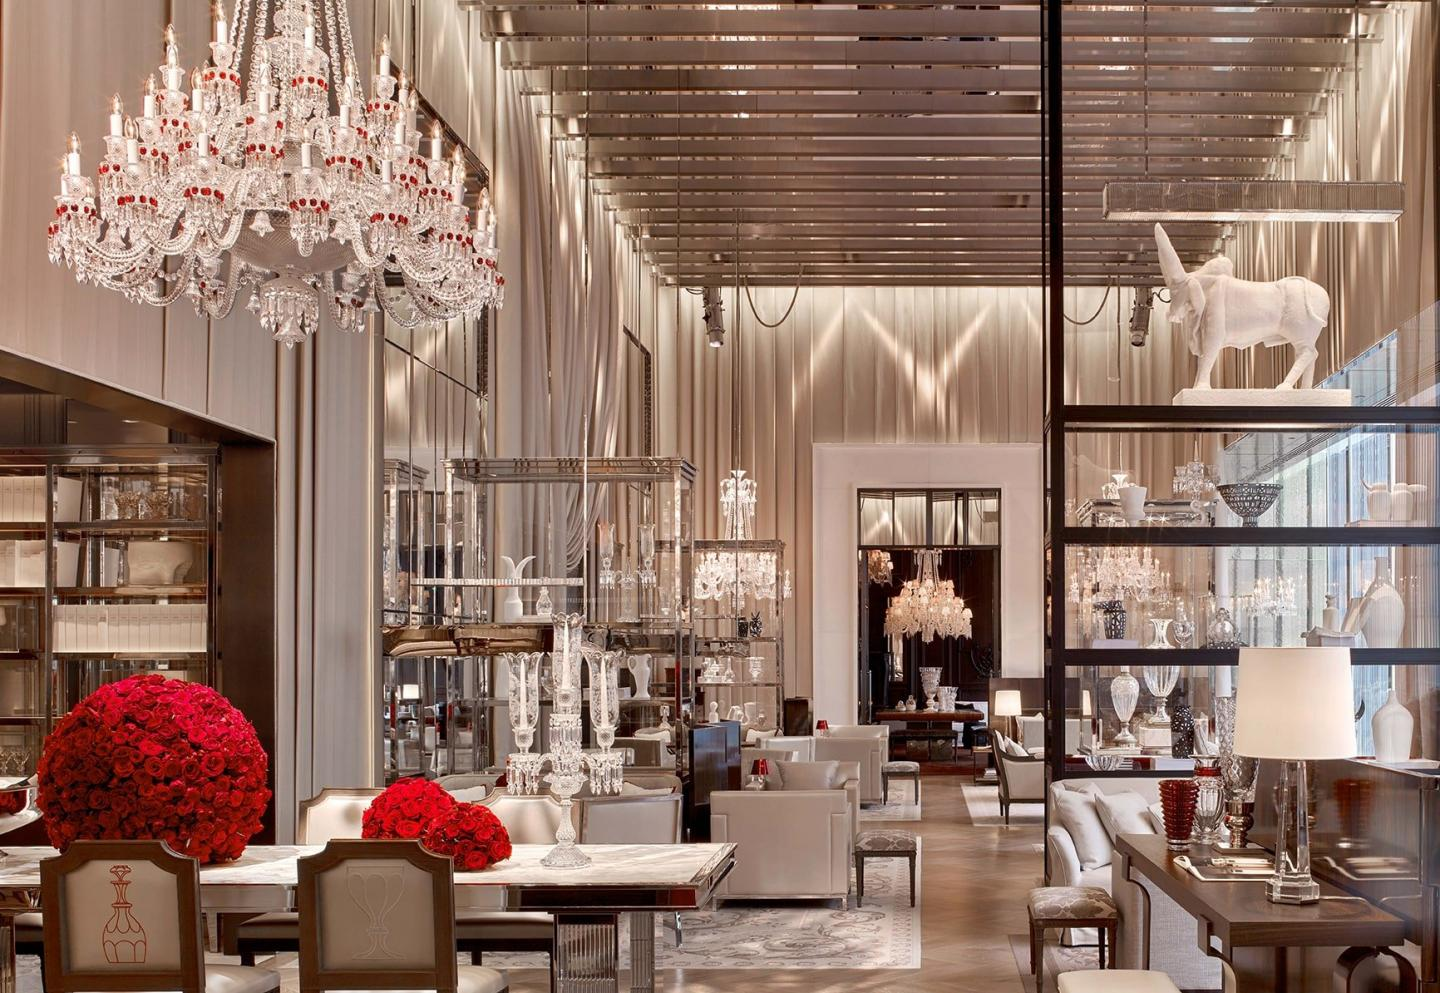 baccarat_hotel_nyc_march_2015_91-min.jpg